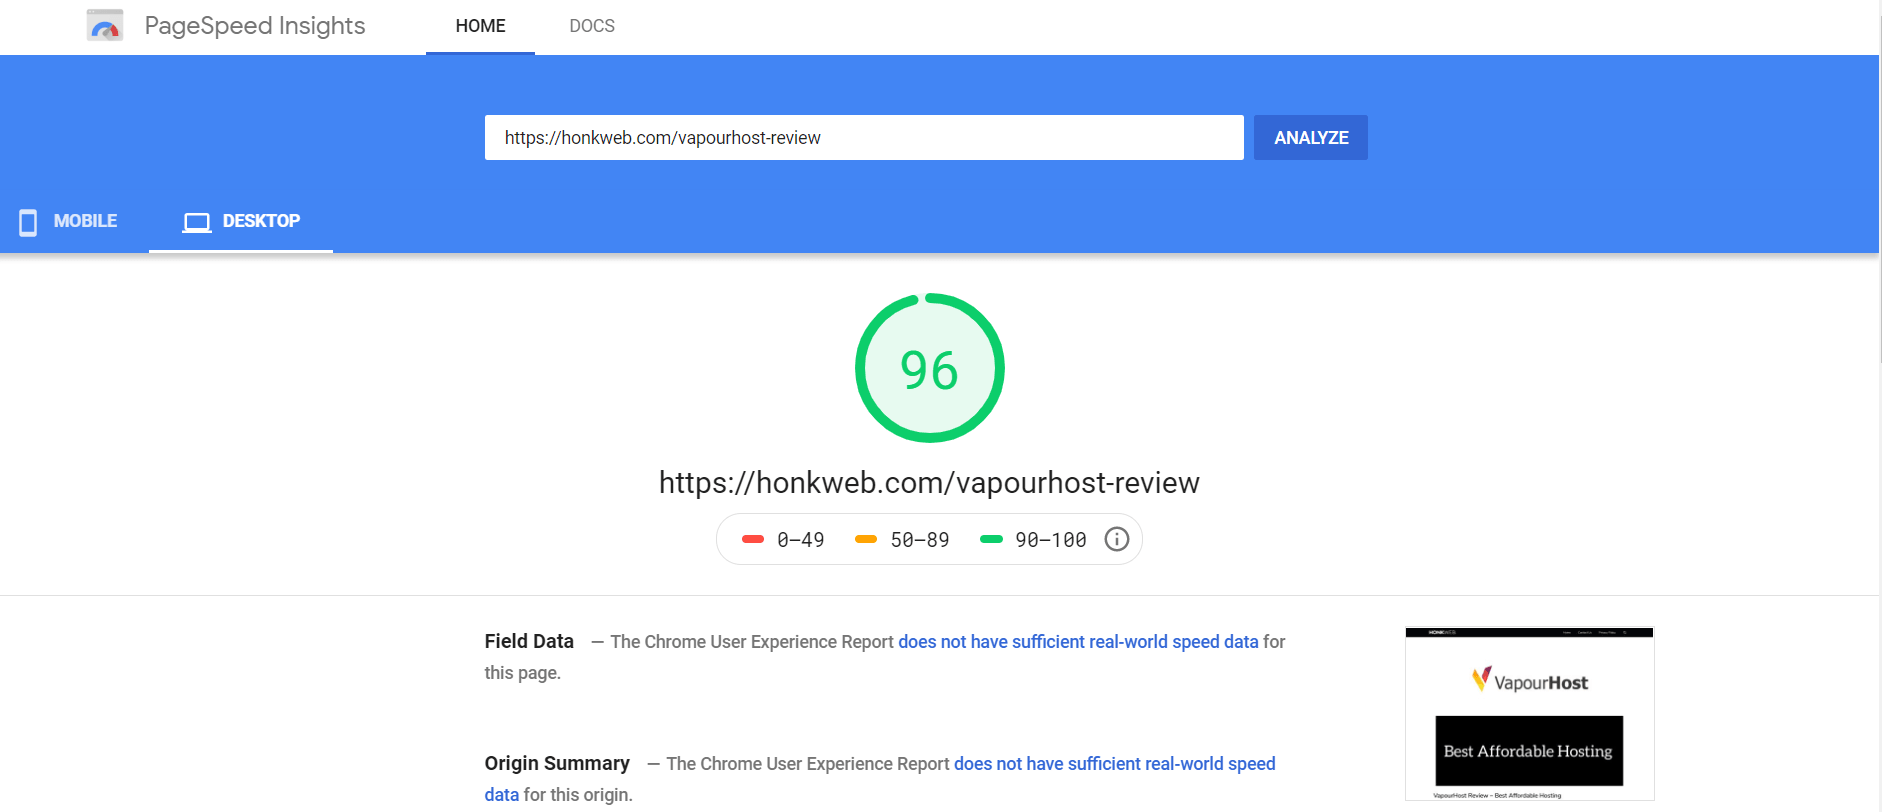 pagespeed insight test